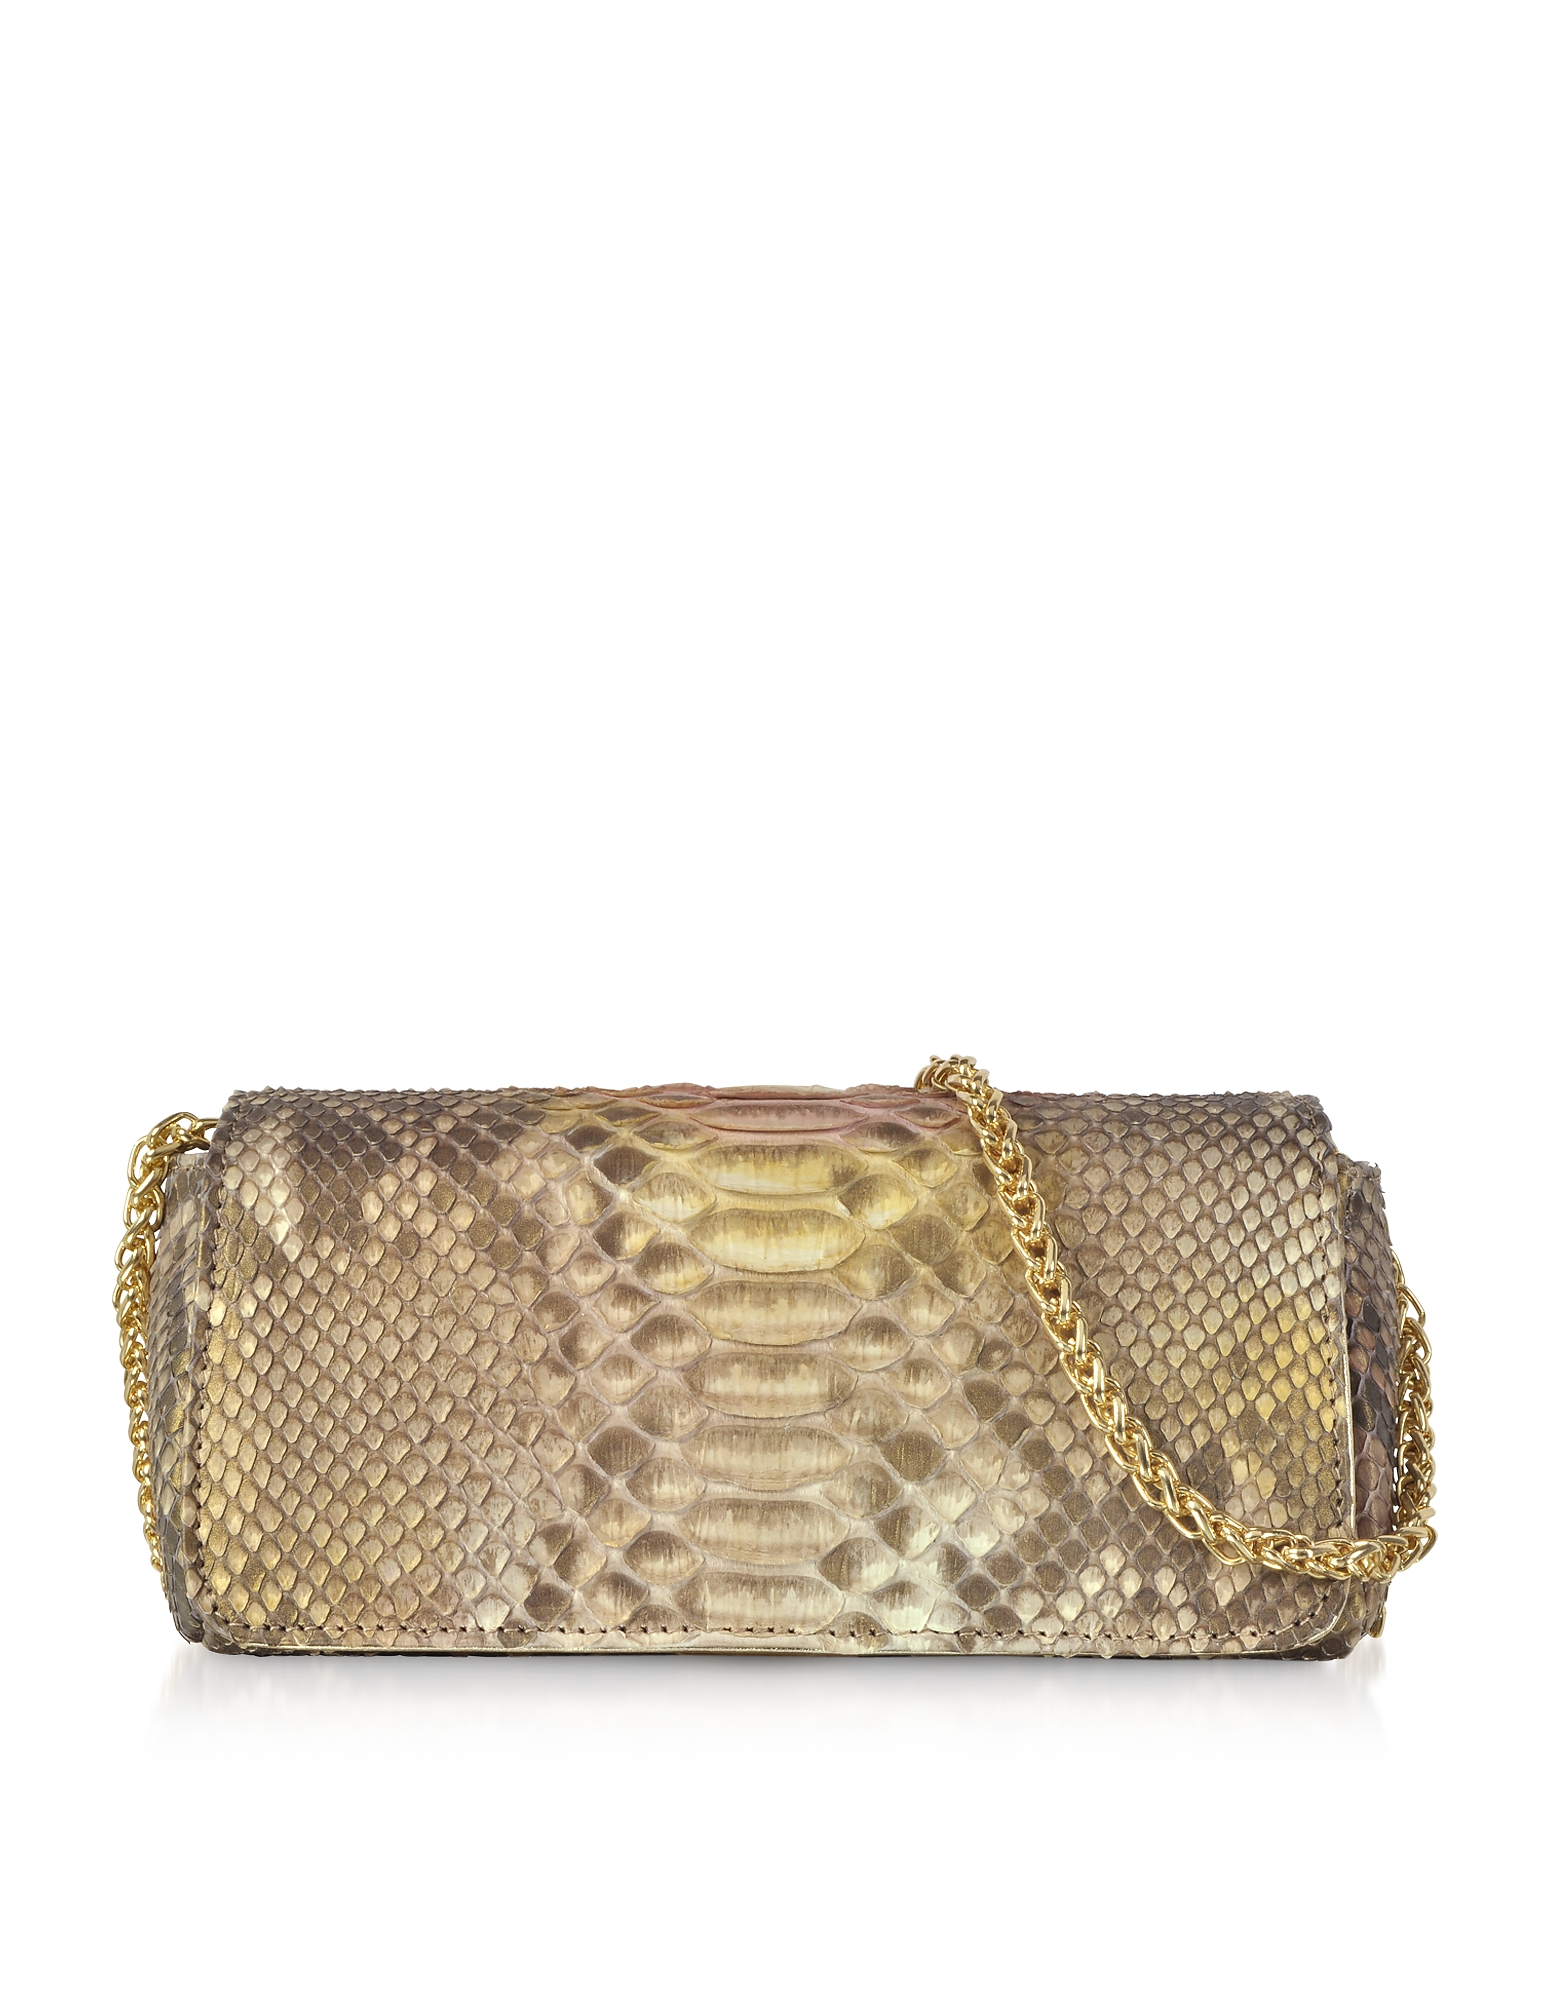 Golden Python Leather Small Shoulder Bag